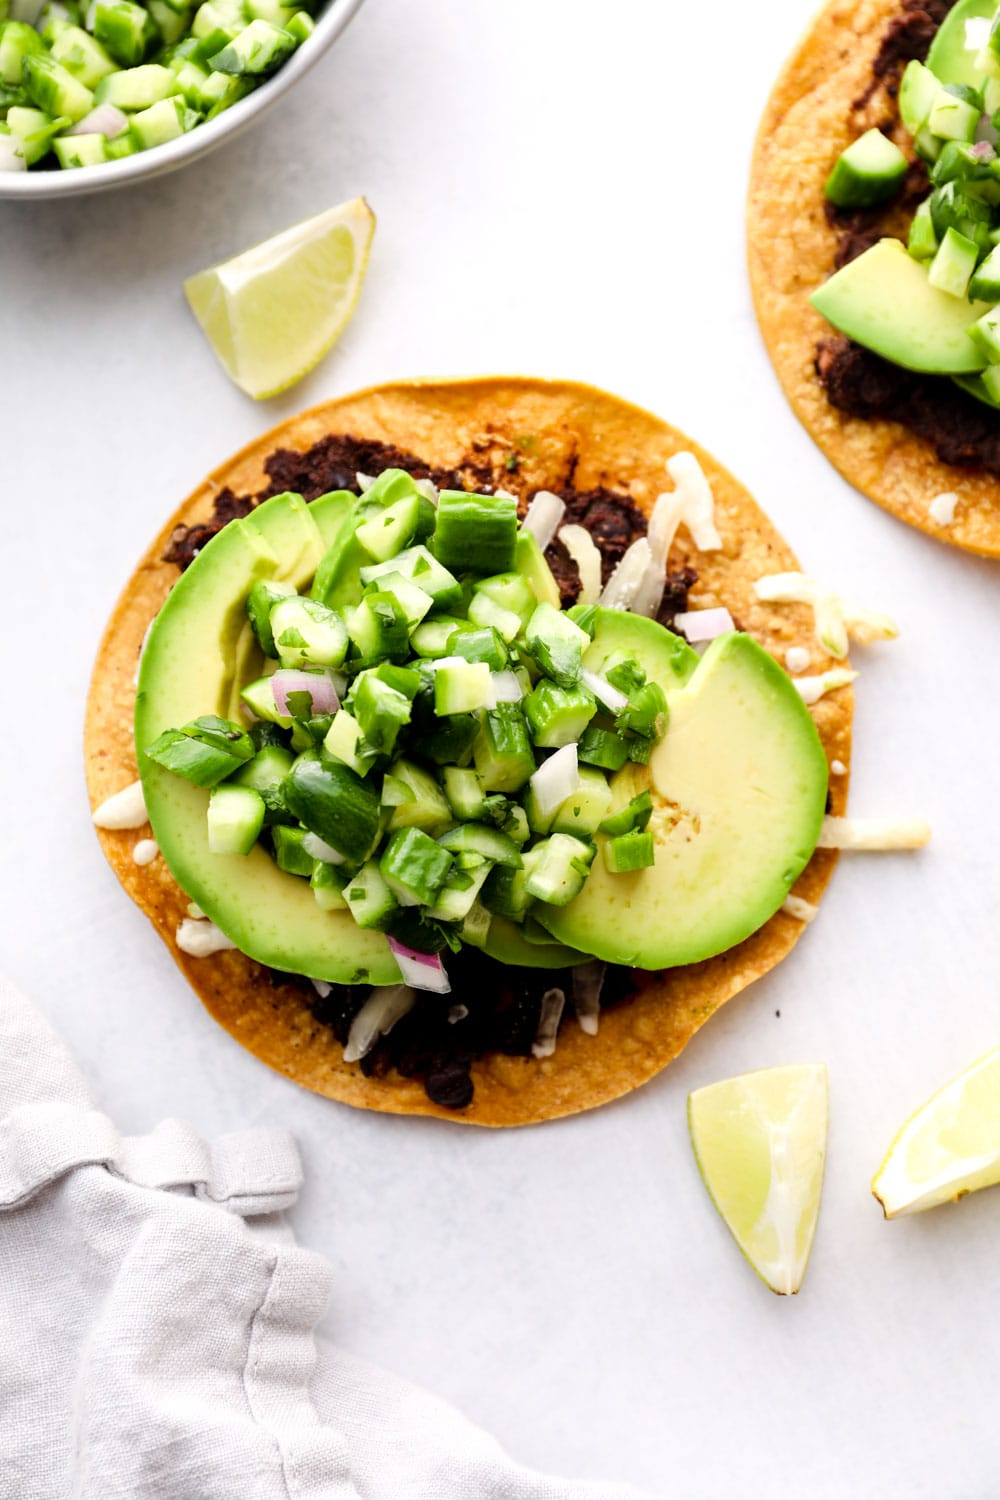 An avocado tostada with beans and cucumber pico on a grey background.